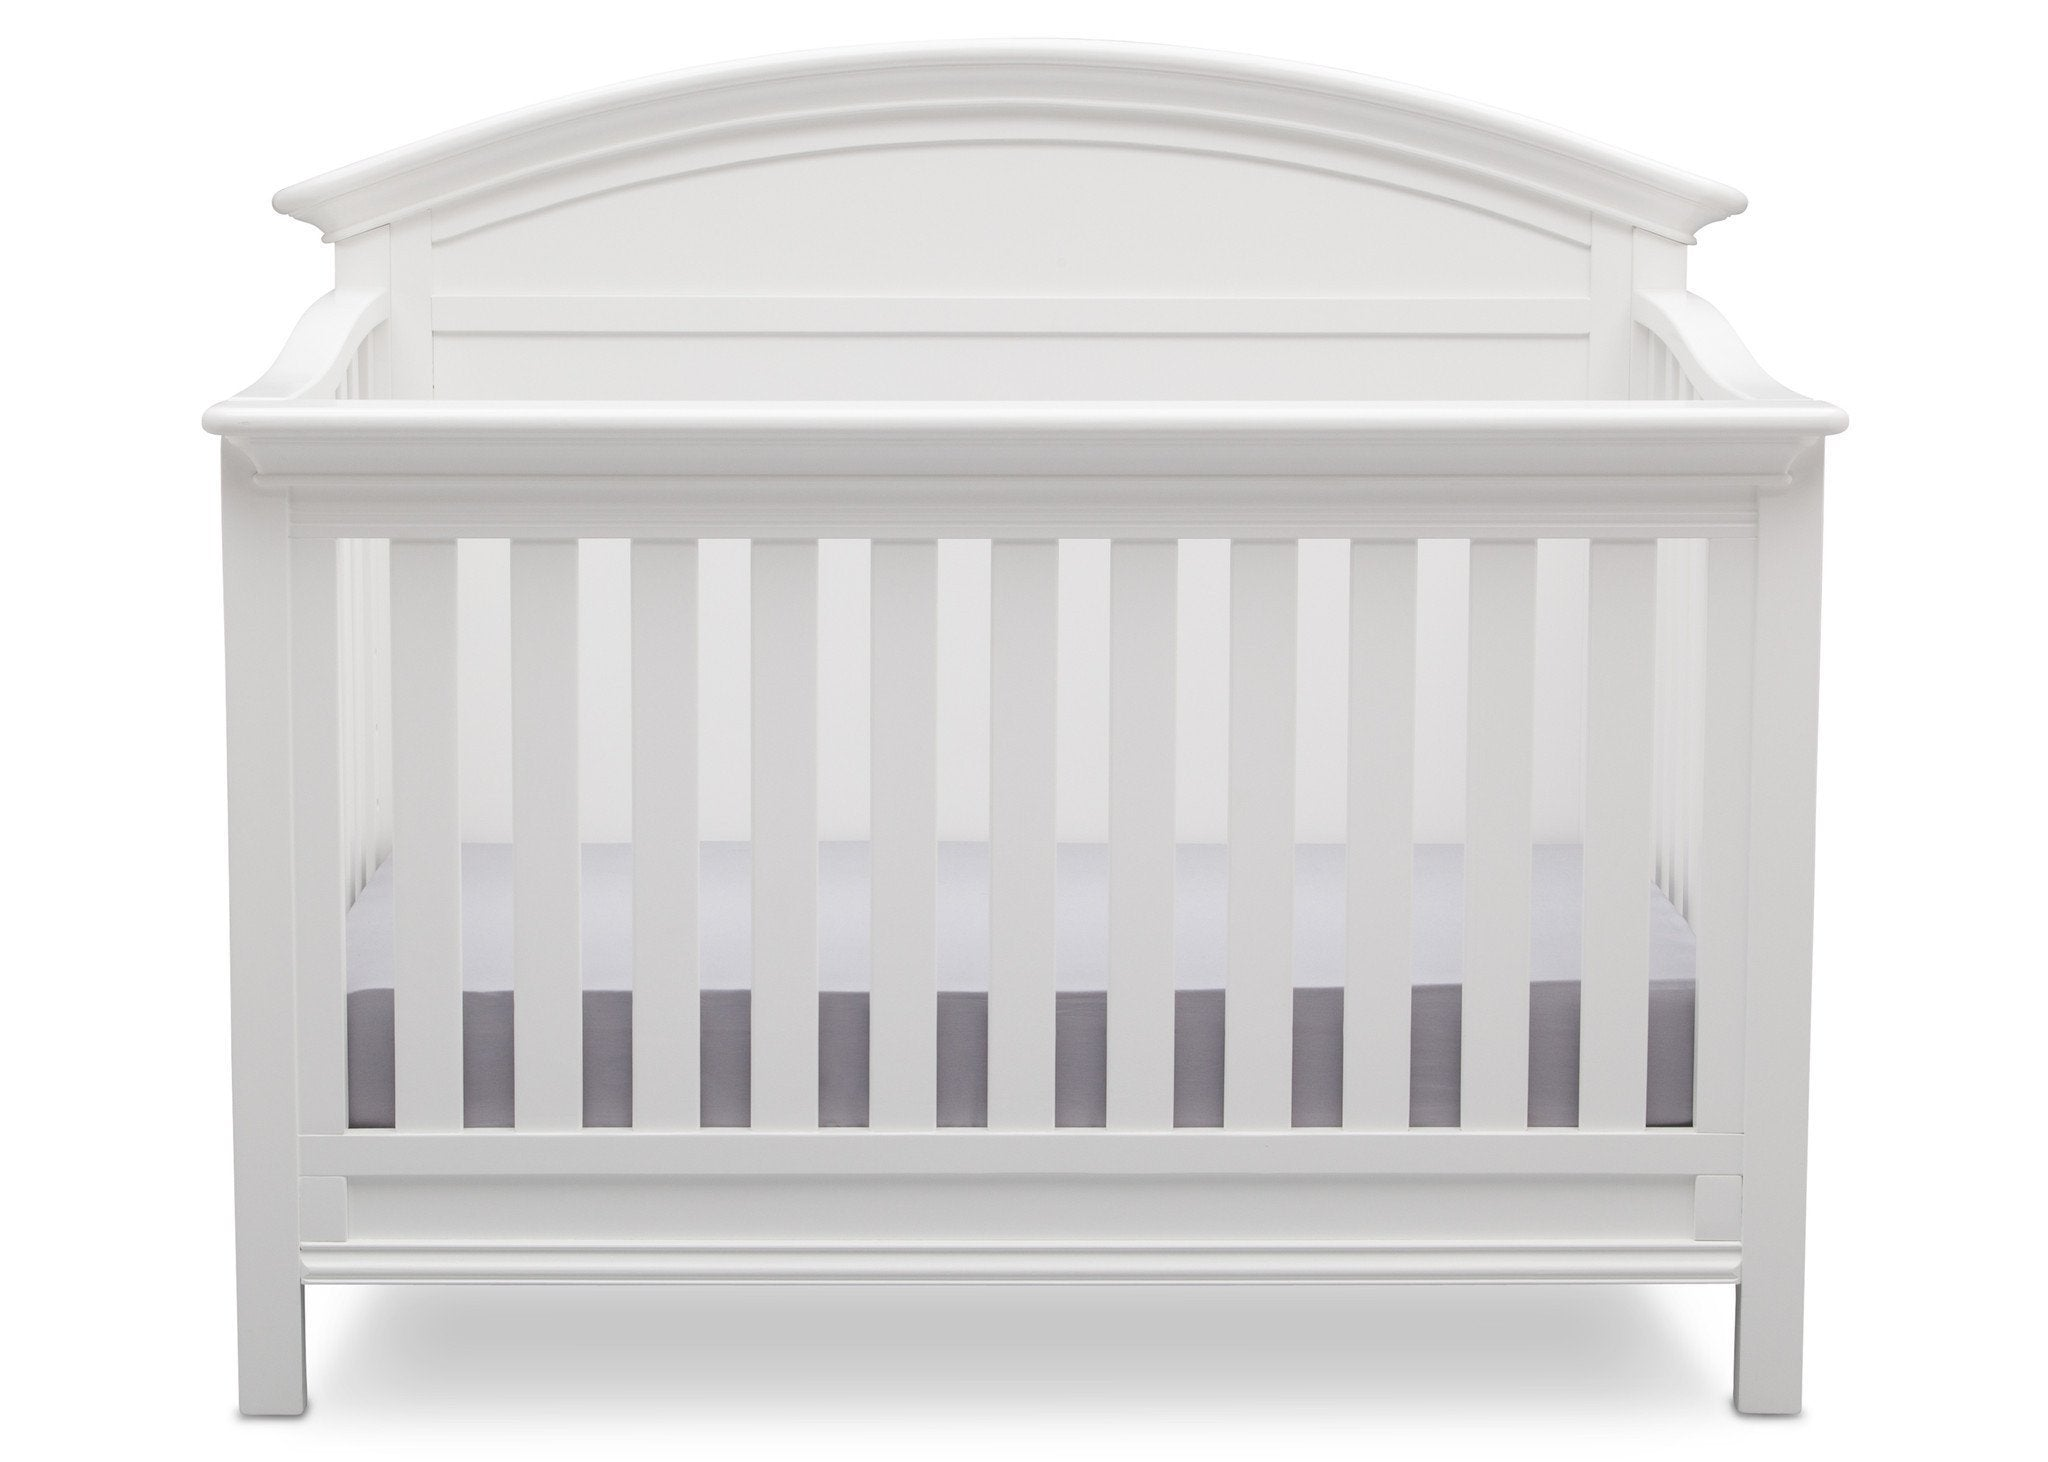 Serta Bianca (130) Adelaide 4-in-1 Crib, Front View with Crib Conversion b3b